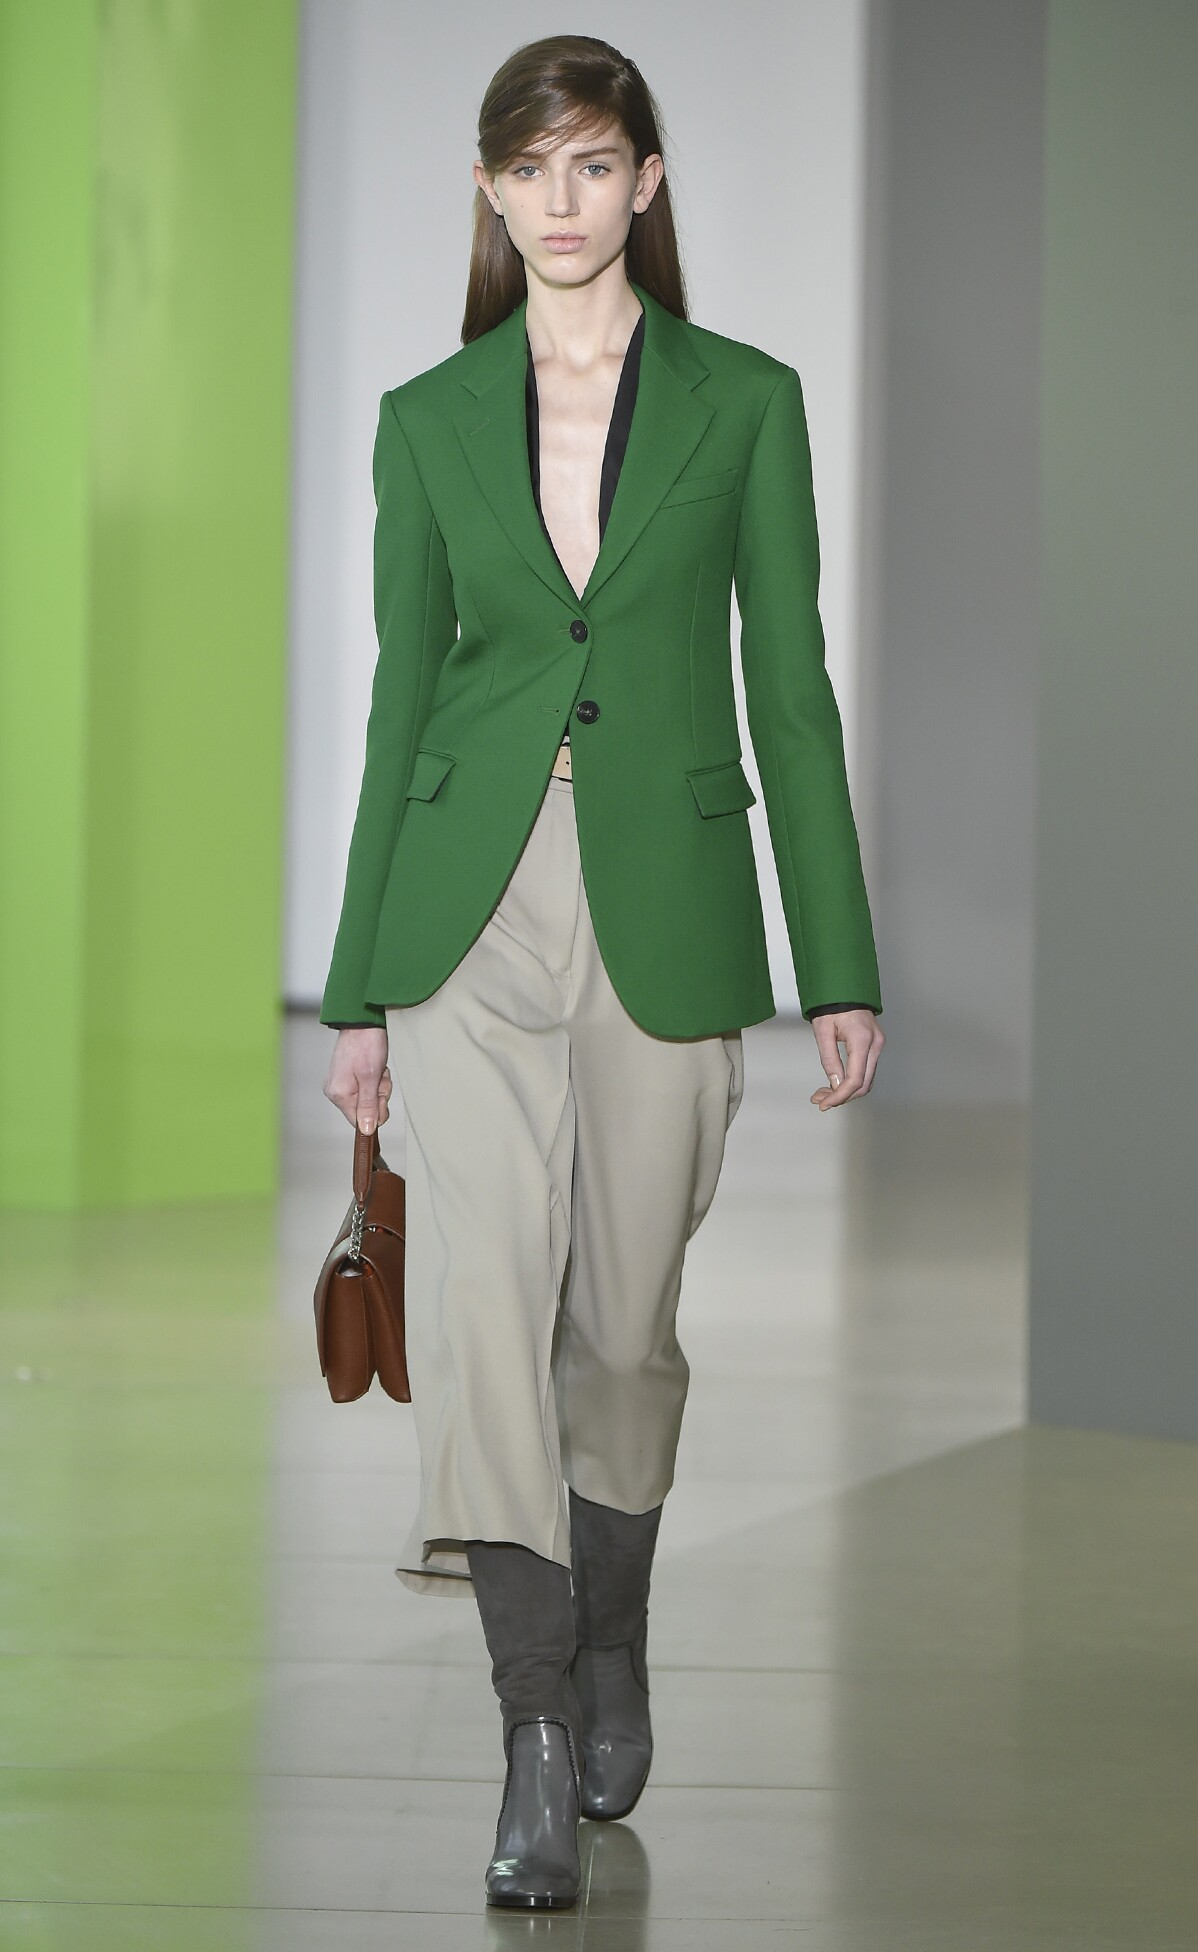 Fashion Woman Model Jil Sander Collection Catwalk